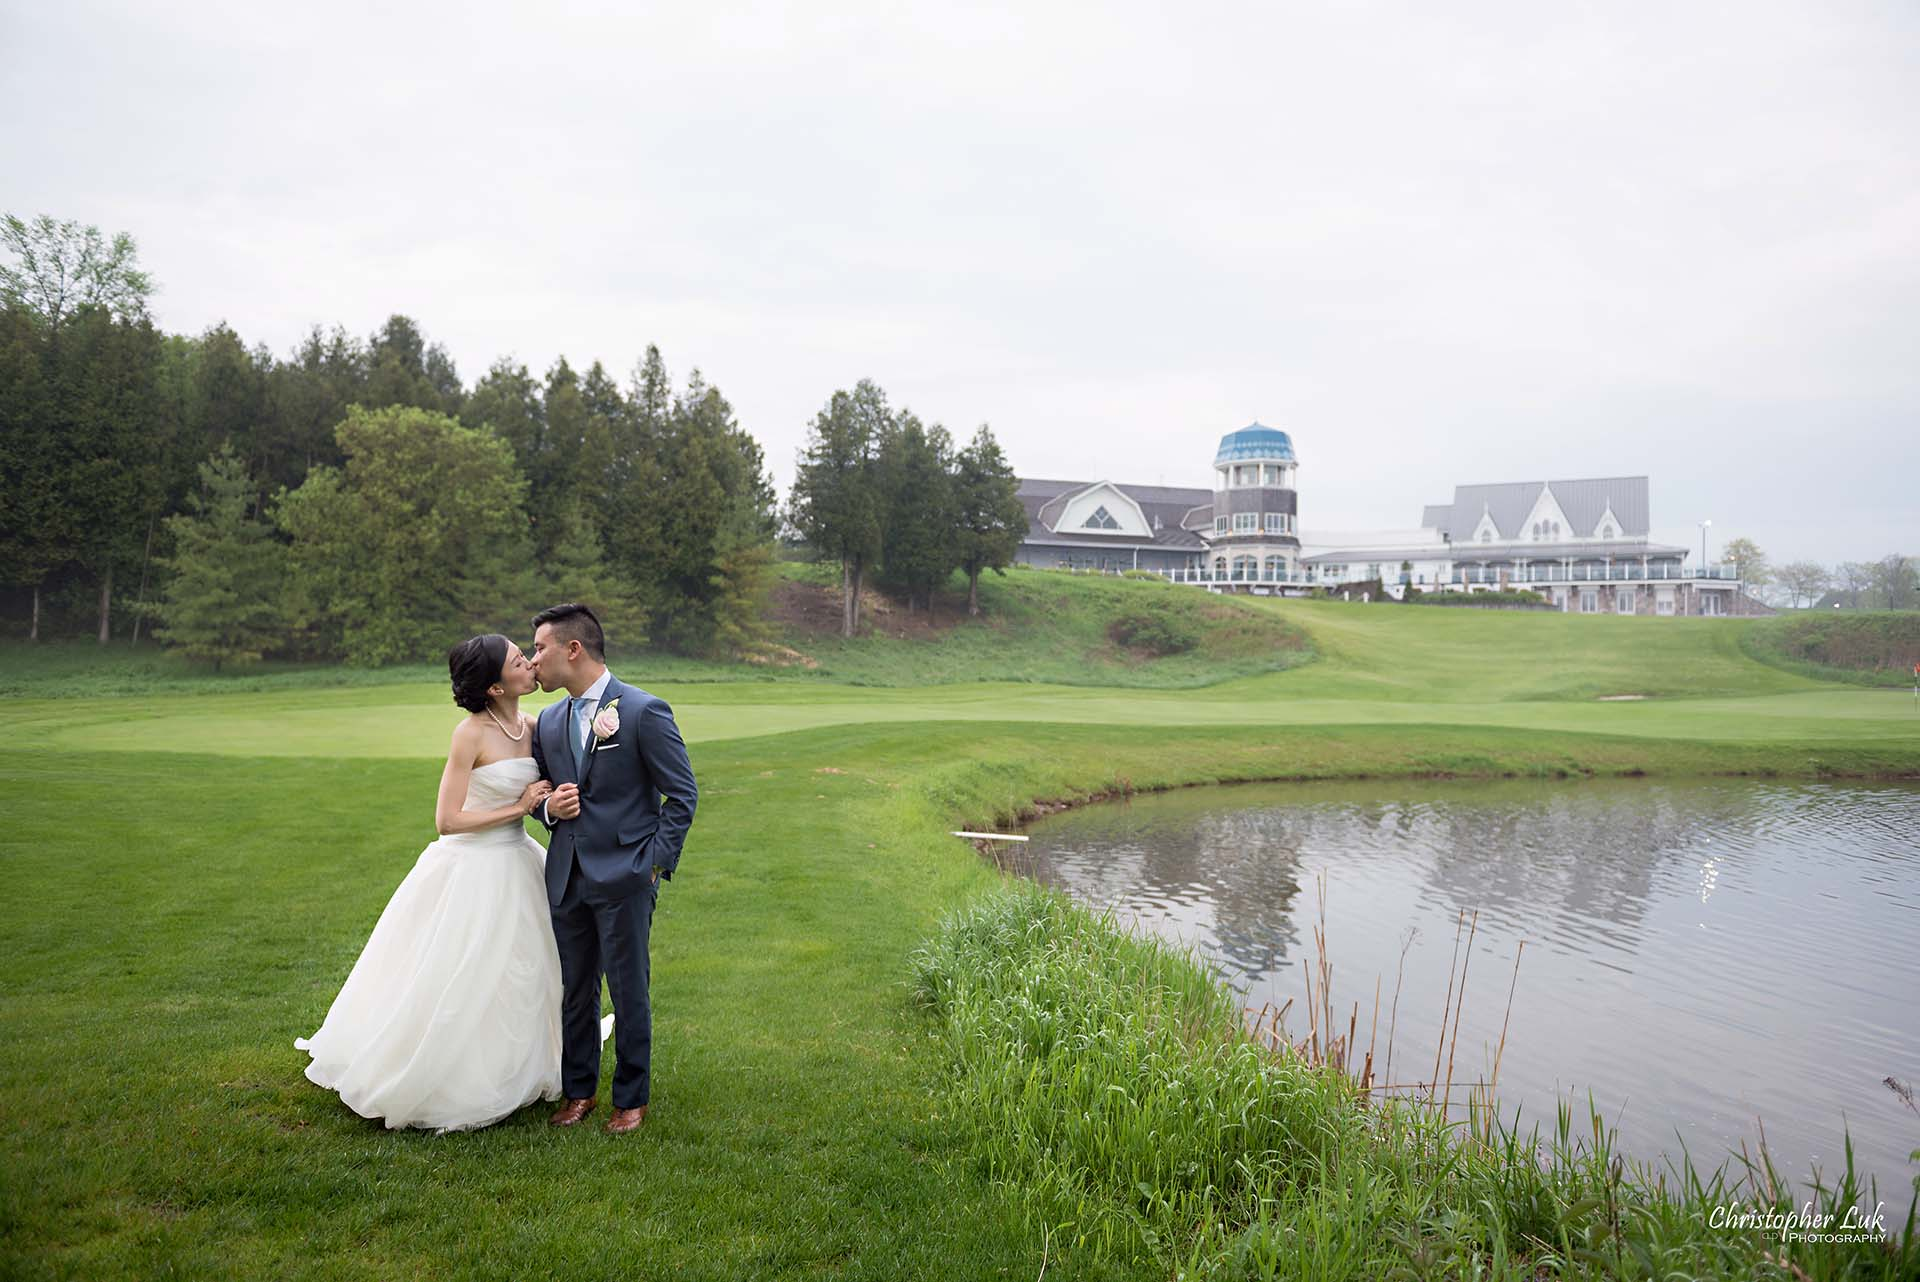 Christopher Luk Toronto Wedding Photographer Angus Glen Golf Club Markham Great Hall Dinner Reception Event Venue Green Field Sunset Bride Groom Natural Candid Photojournalistic Walking Together Green Pond Lake Clubhouse Landscape Kiss